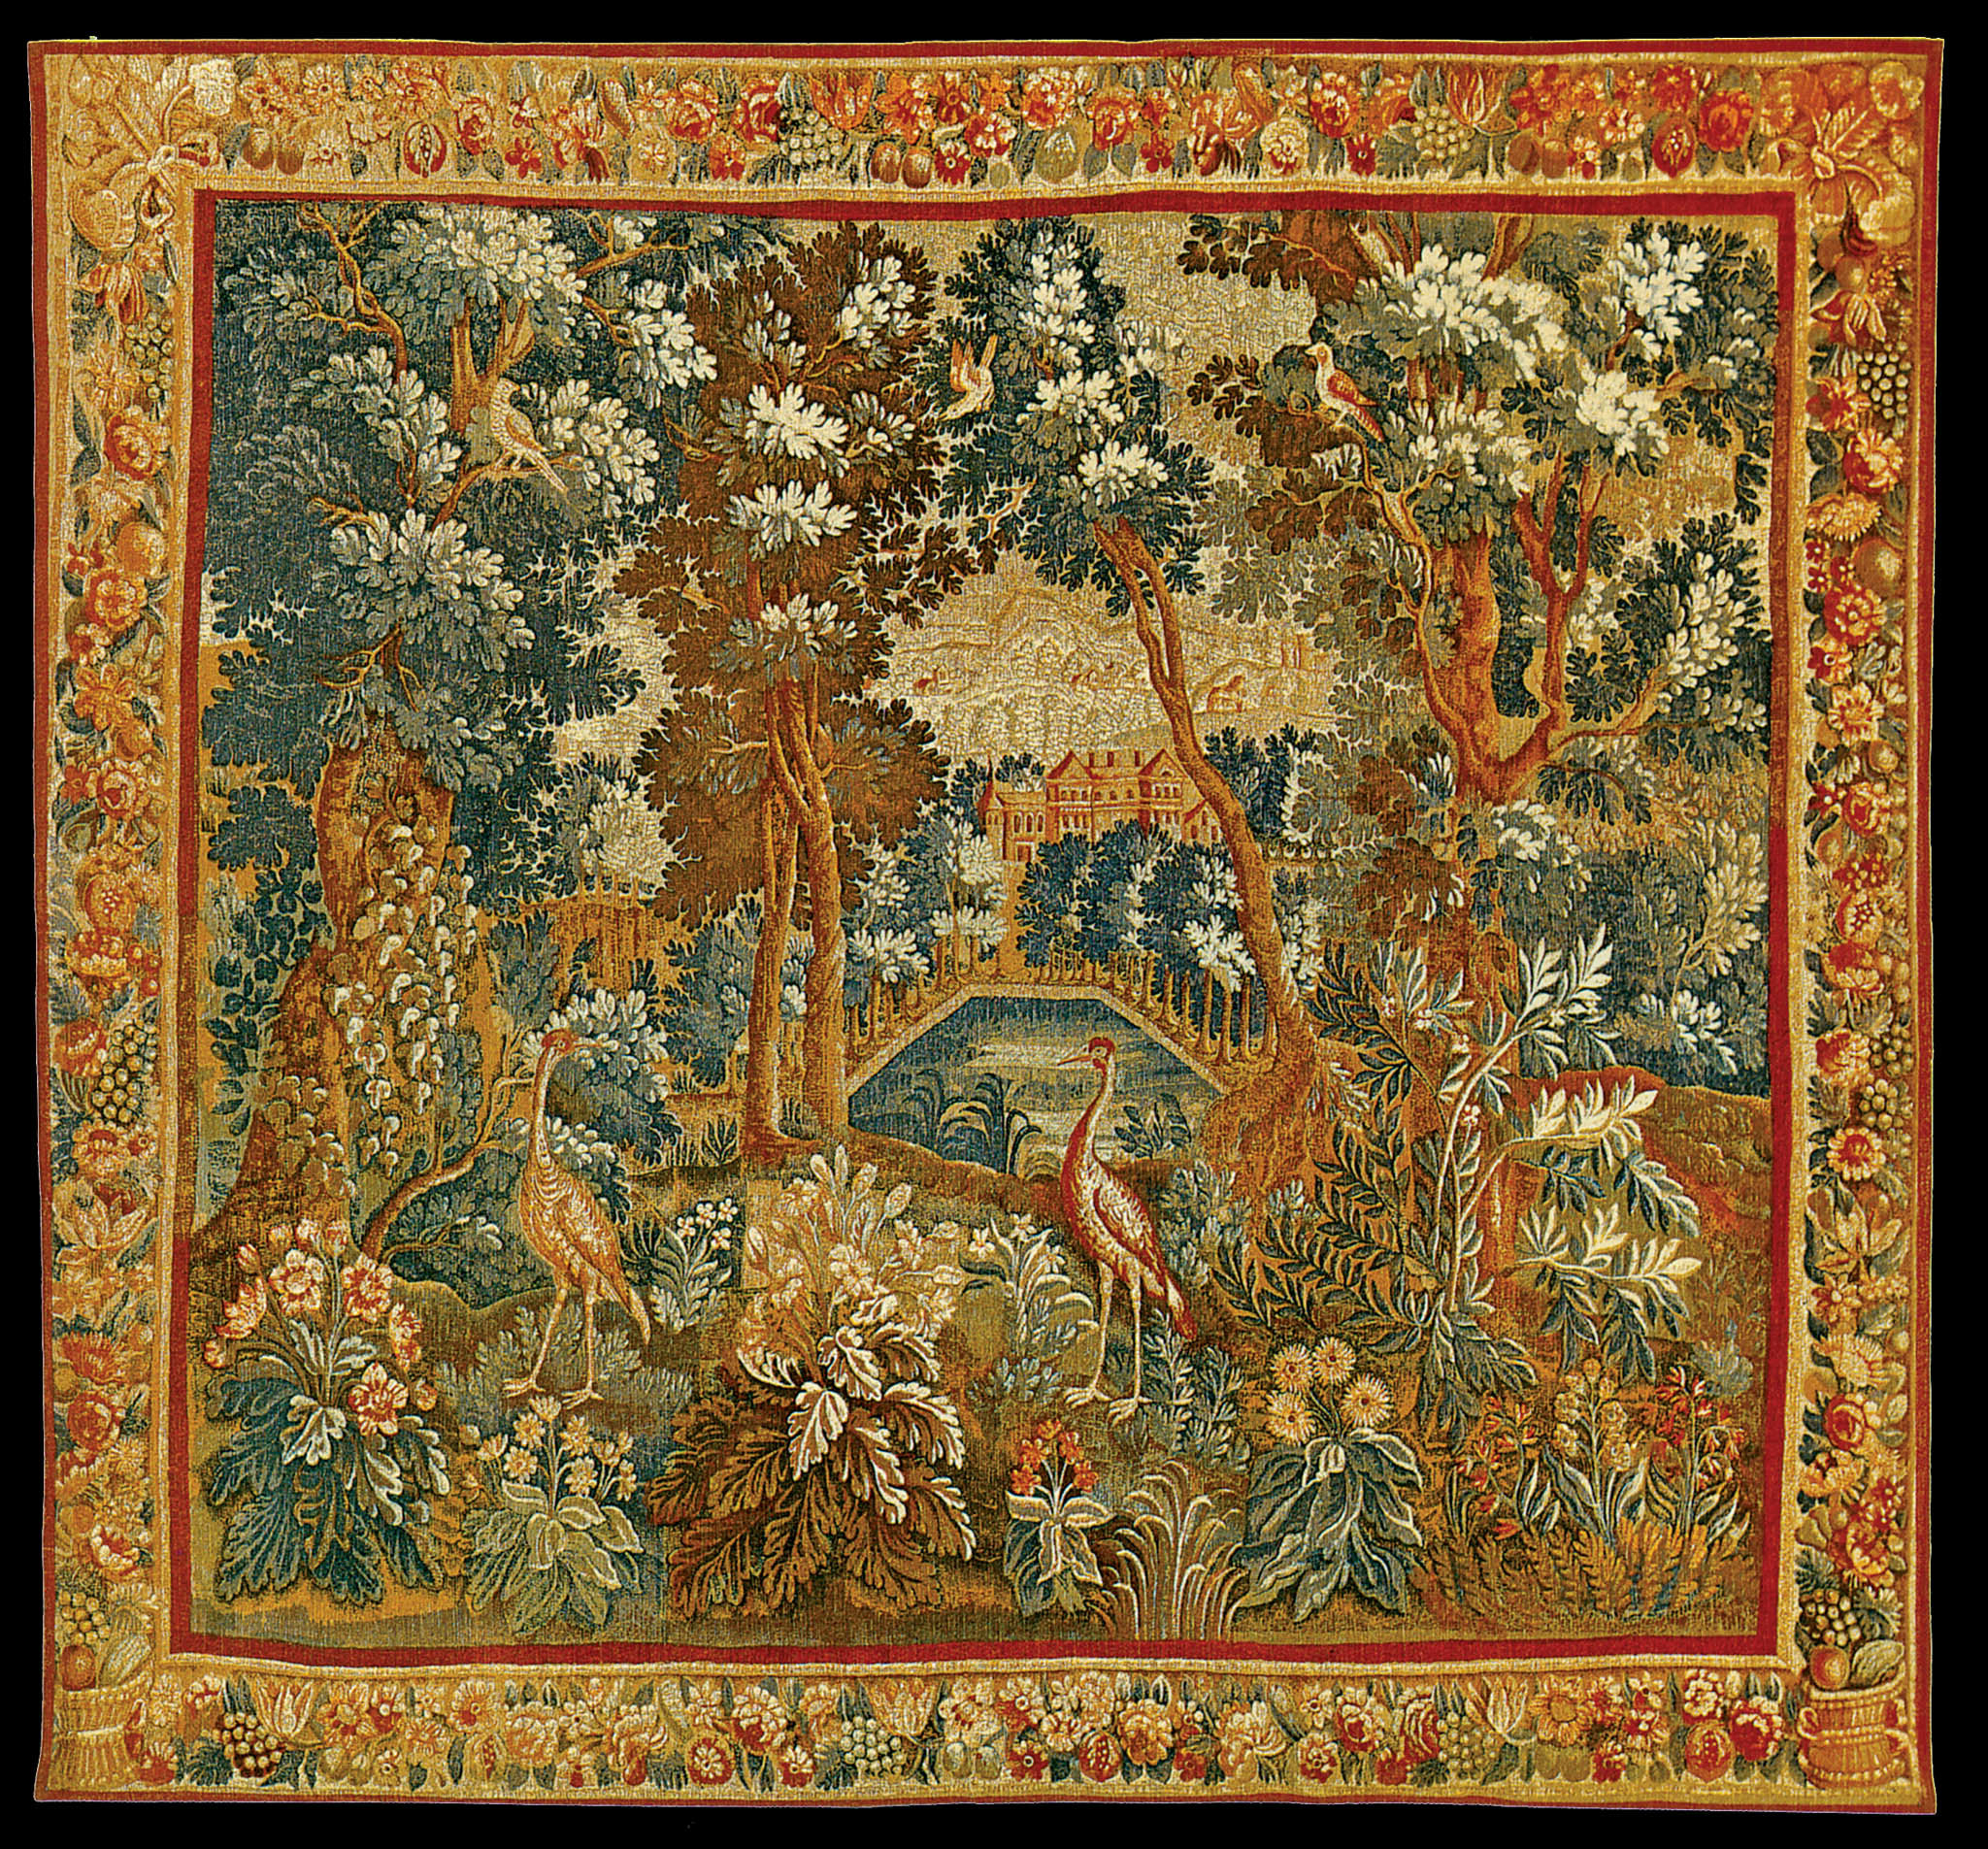 Widely Used The Two Herons Tapestry In Blended Fabric Hidden Garden Chinoiserie Wall Hangings With Rod (View 8 of 20)